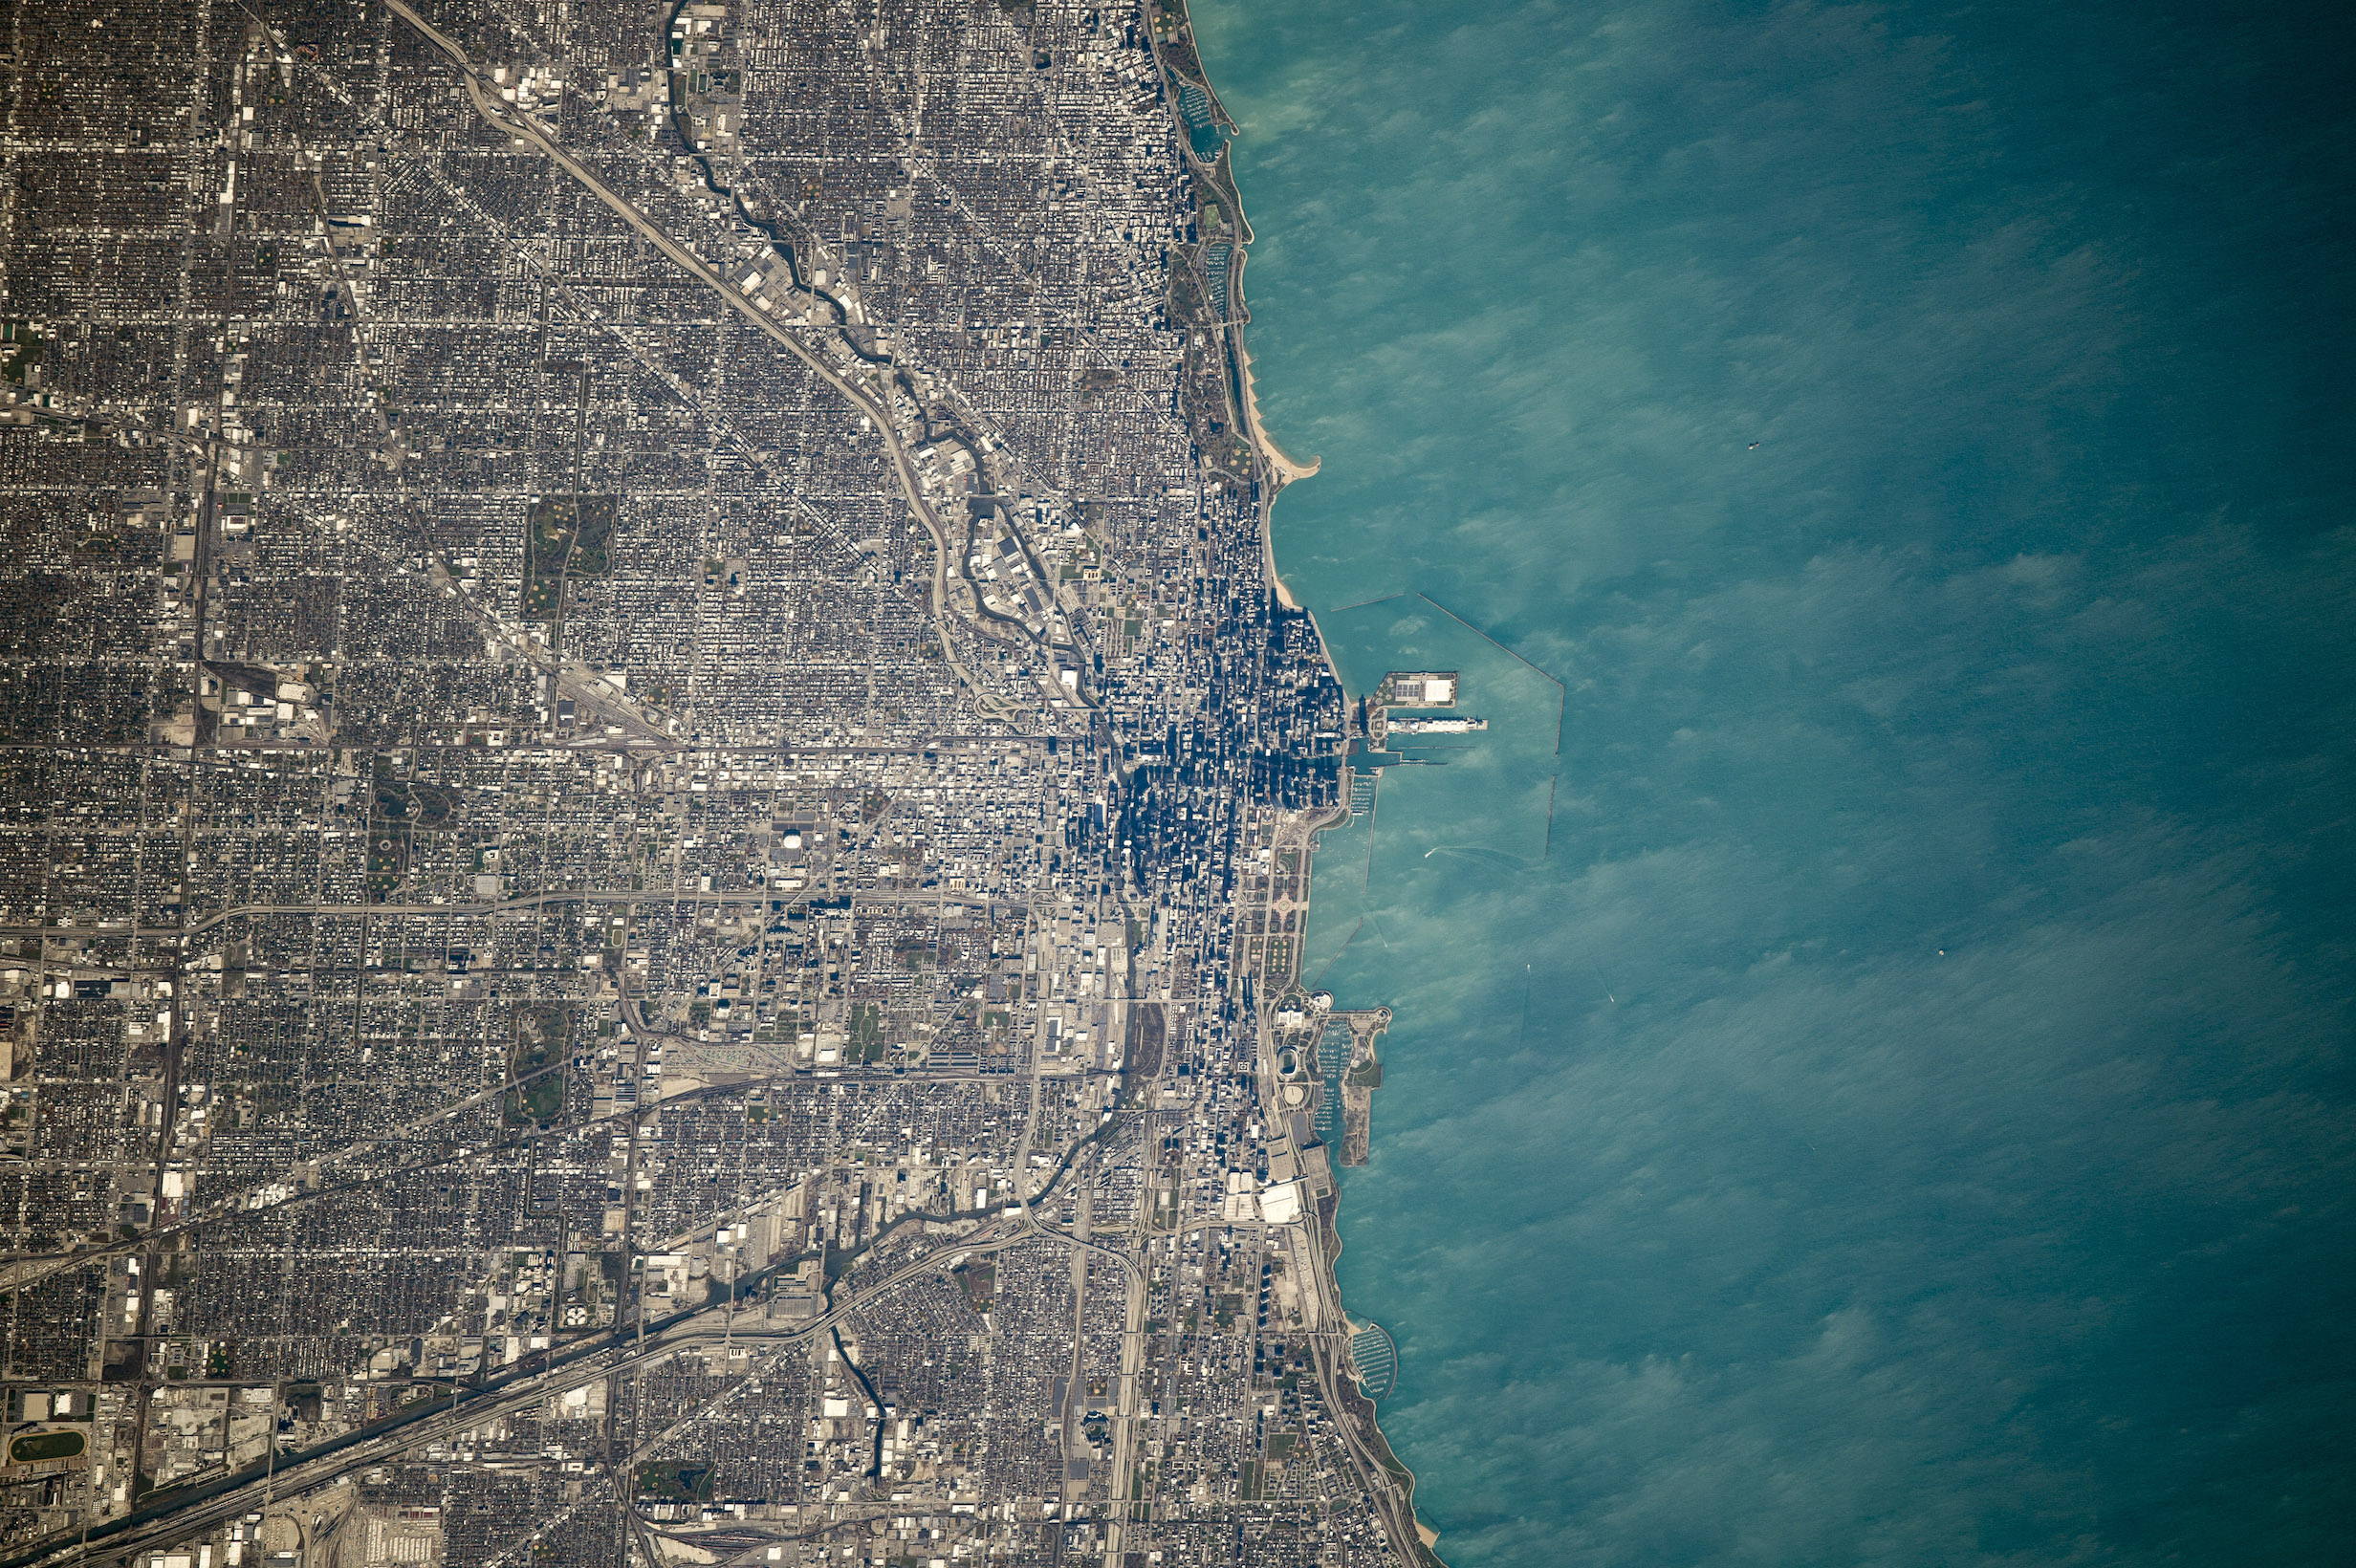 Today's Image of the Day comes from the NASA Earth Observatory and features a look at the city of Chicago and Lake Michigan.